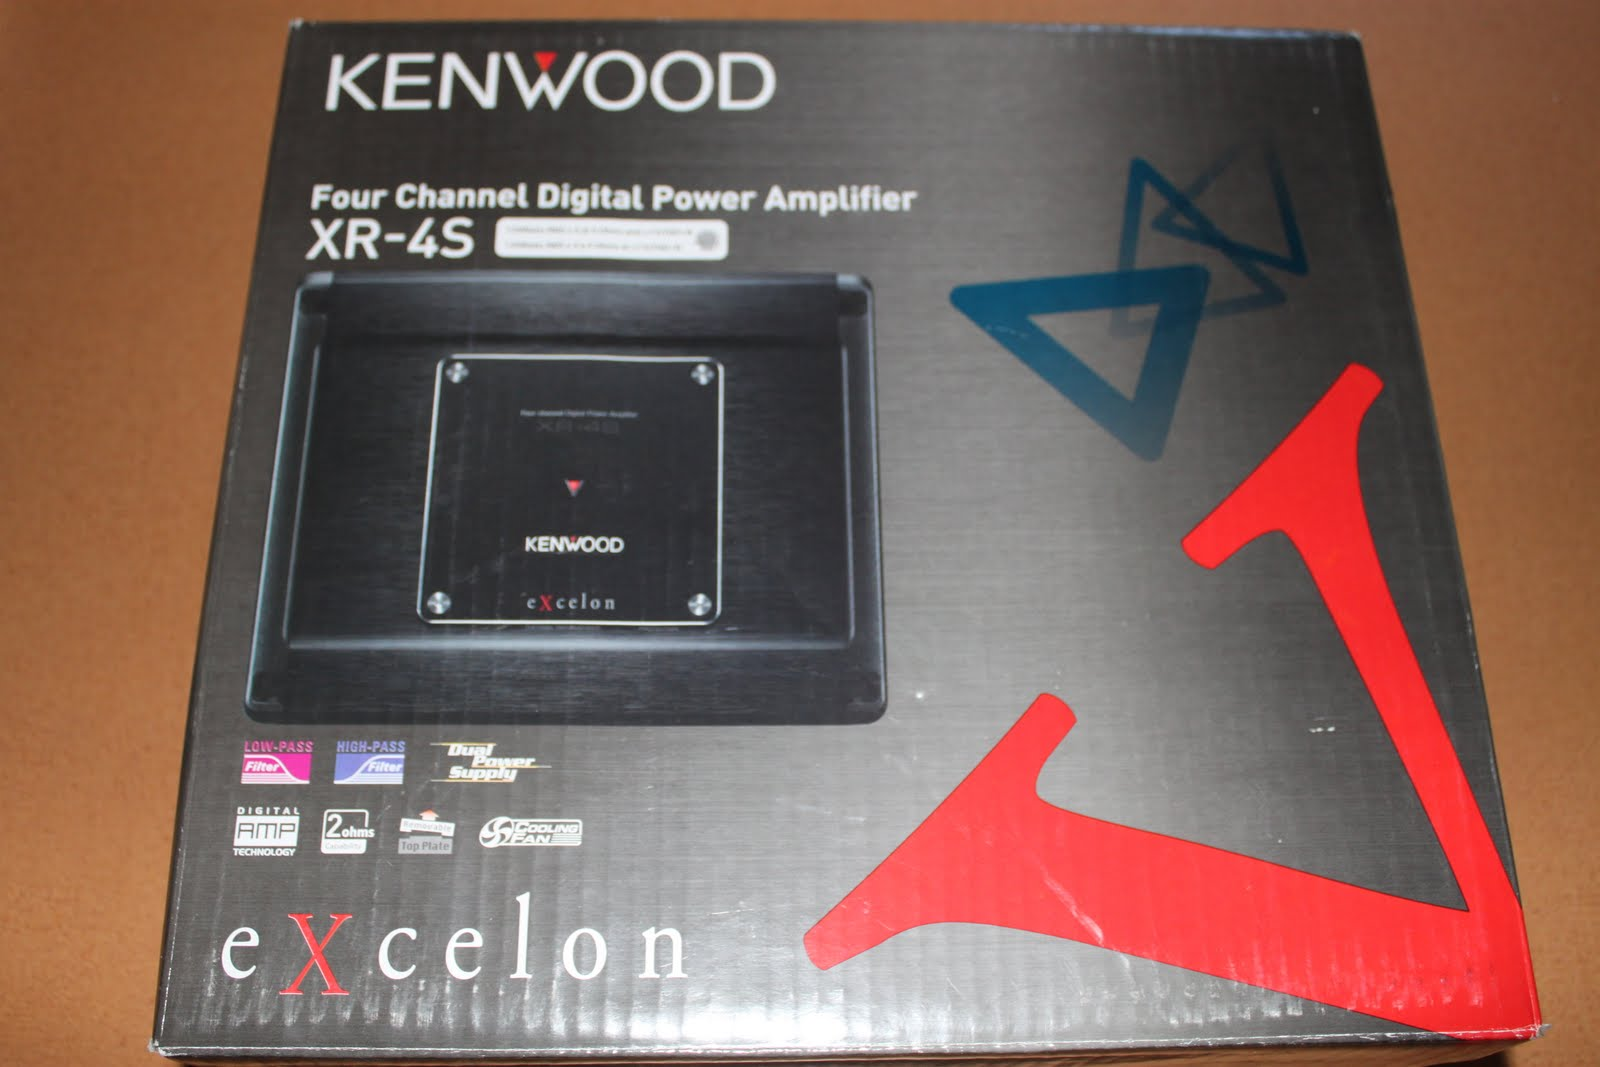 Unbox Kenwood Excelons Postmetro Excelon Kfc Xw10 Wiring Diagram Having Recently Reviewed Kenwoods X1200m And After Being So Impressed With It I Was